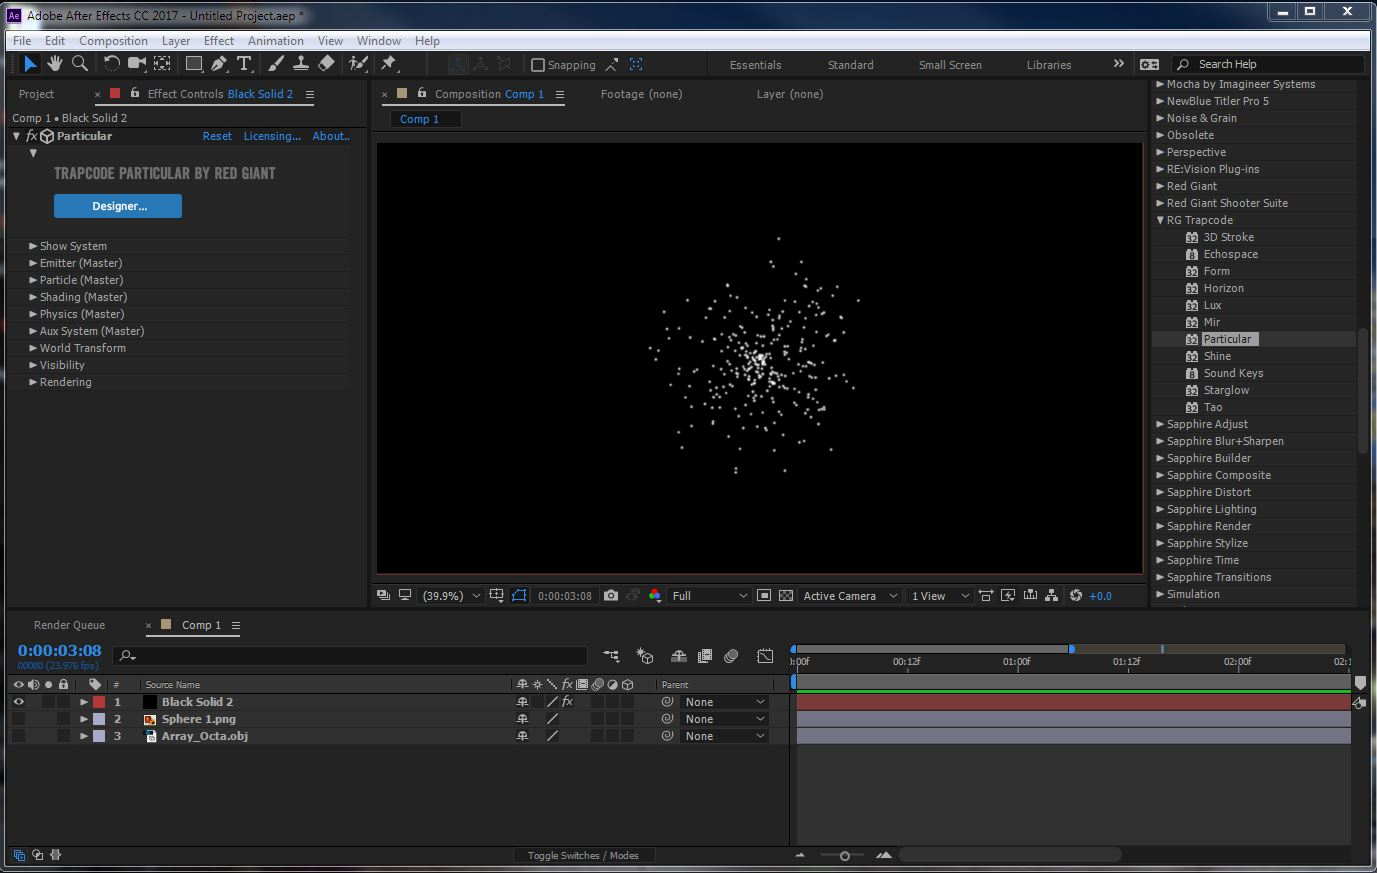 REVIEW - Trapcode Suite 14 from Red Giant Software by Kevin P